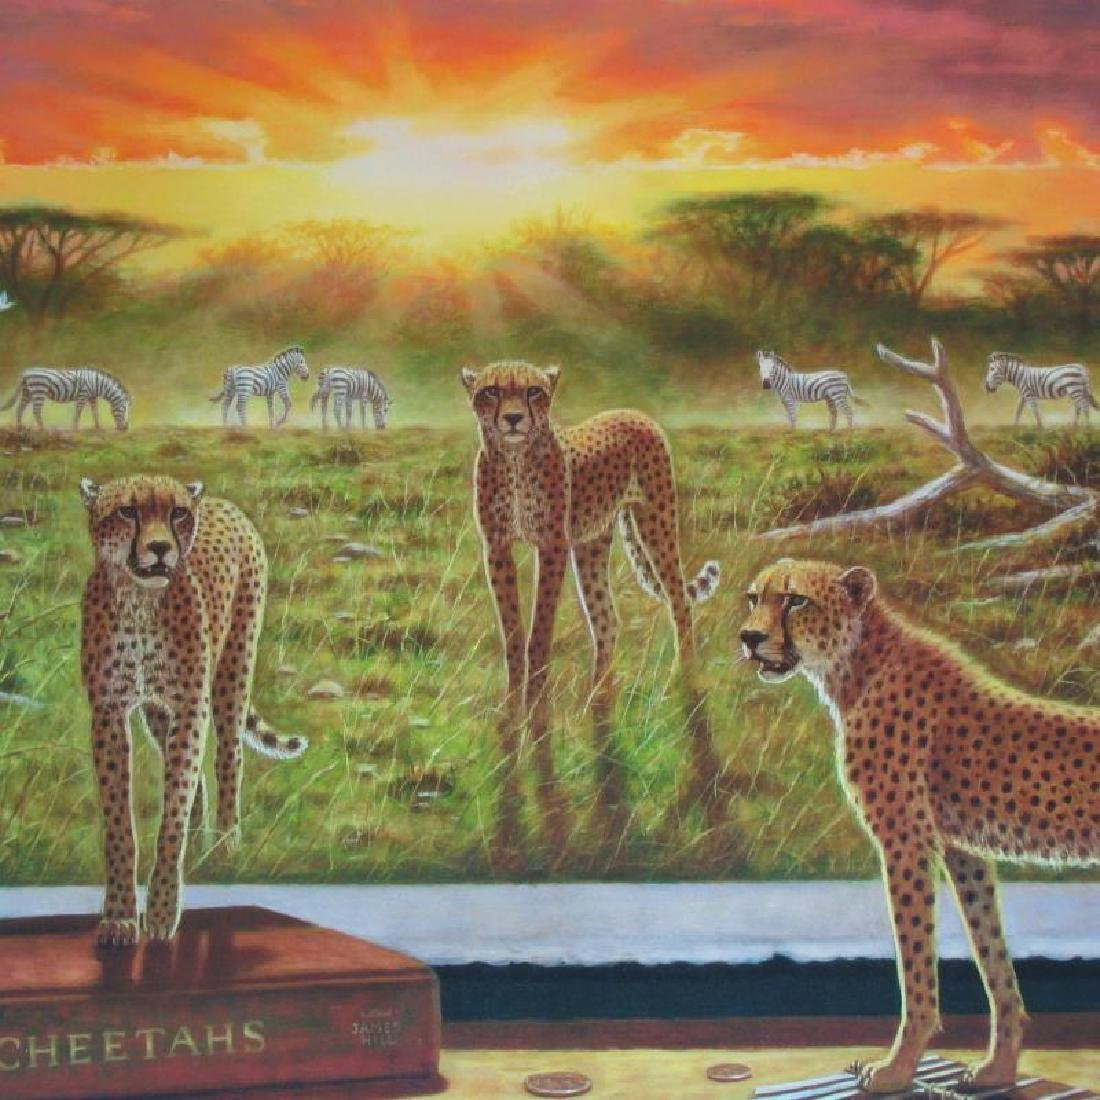 Cheetah Ltd Ed Large Canvas Newell Realistic Surreal - 2